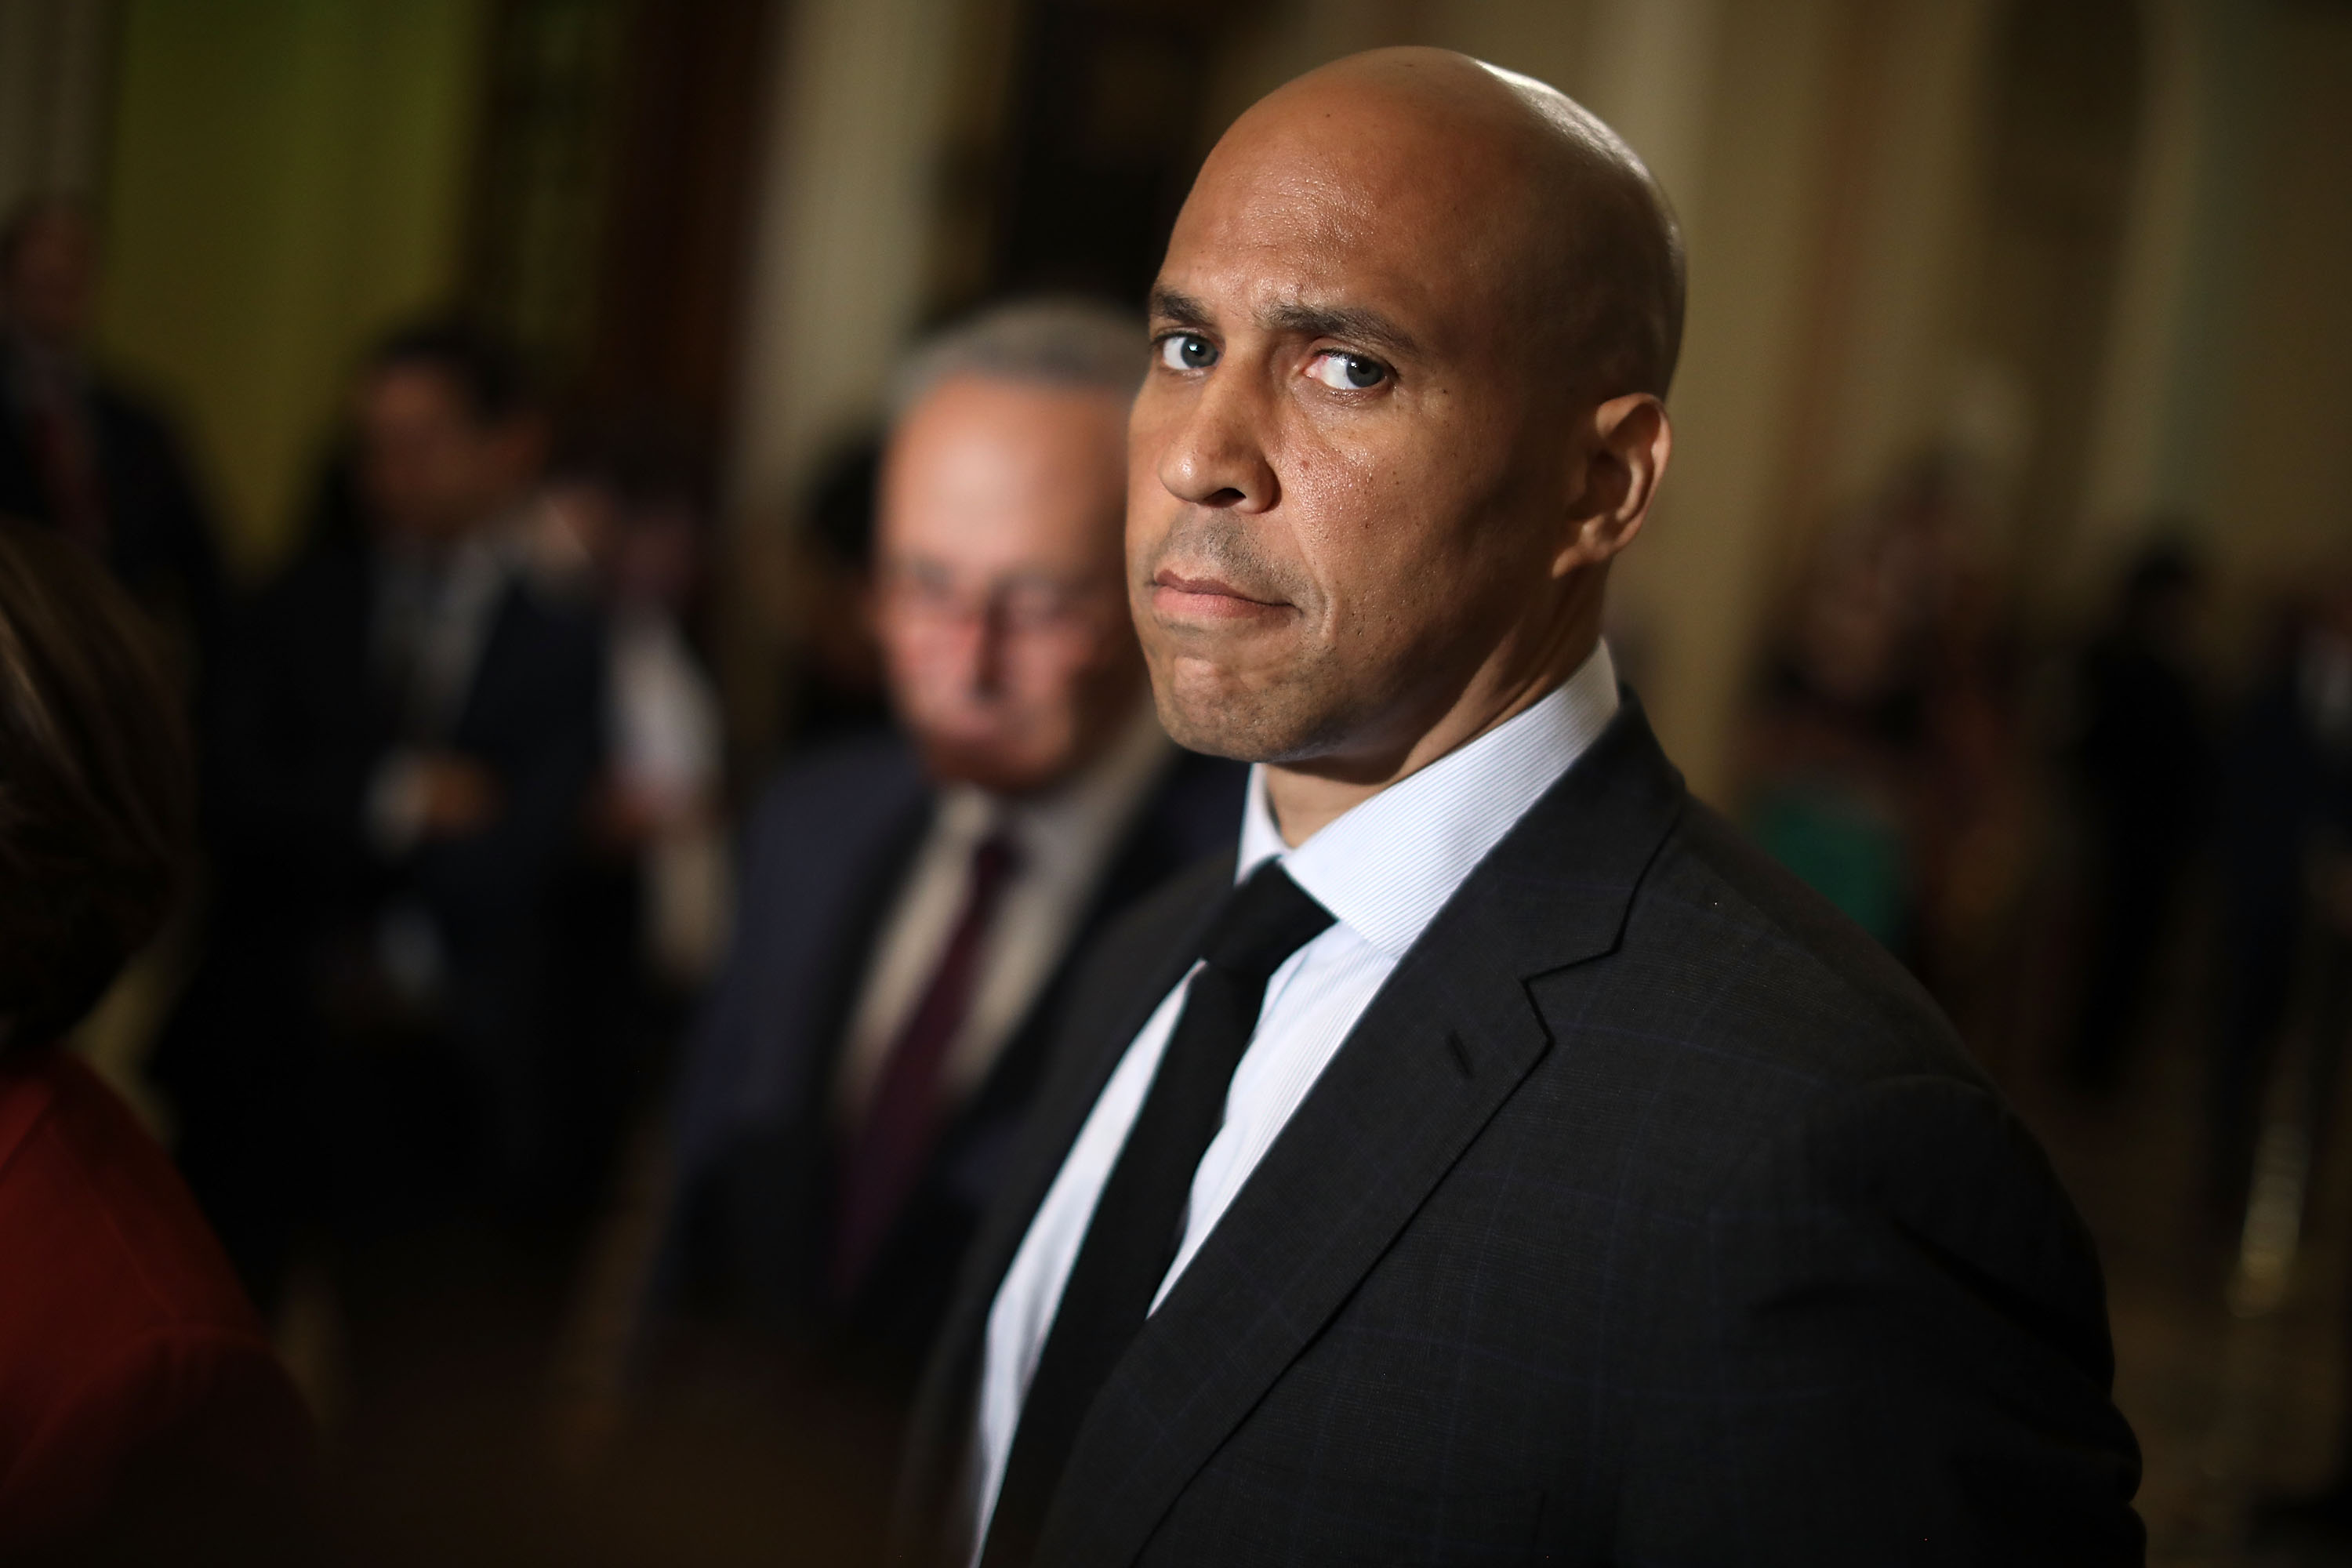 Sen. Cory Booker (D-NJ) talks with reporters following the weekly Democratic policy luncheon meeting at the U.S. Capitol July 10, 2018, in Washington, DC. (Getty Images)